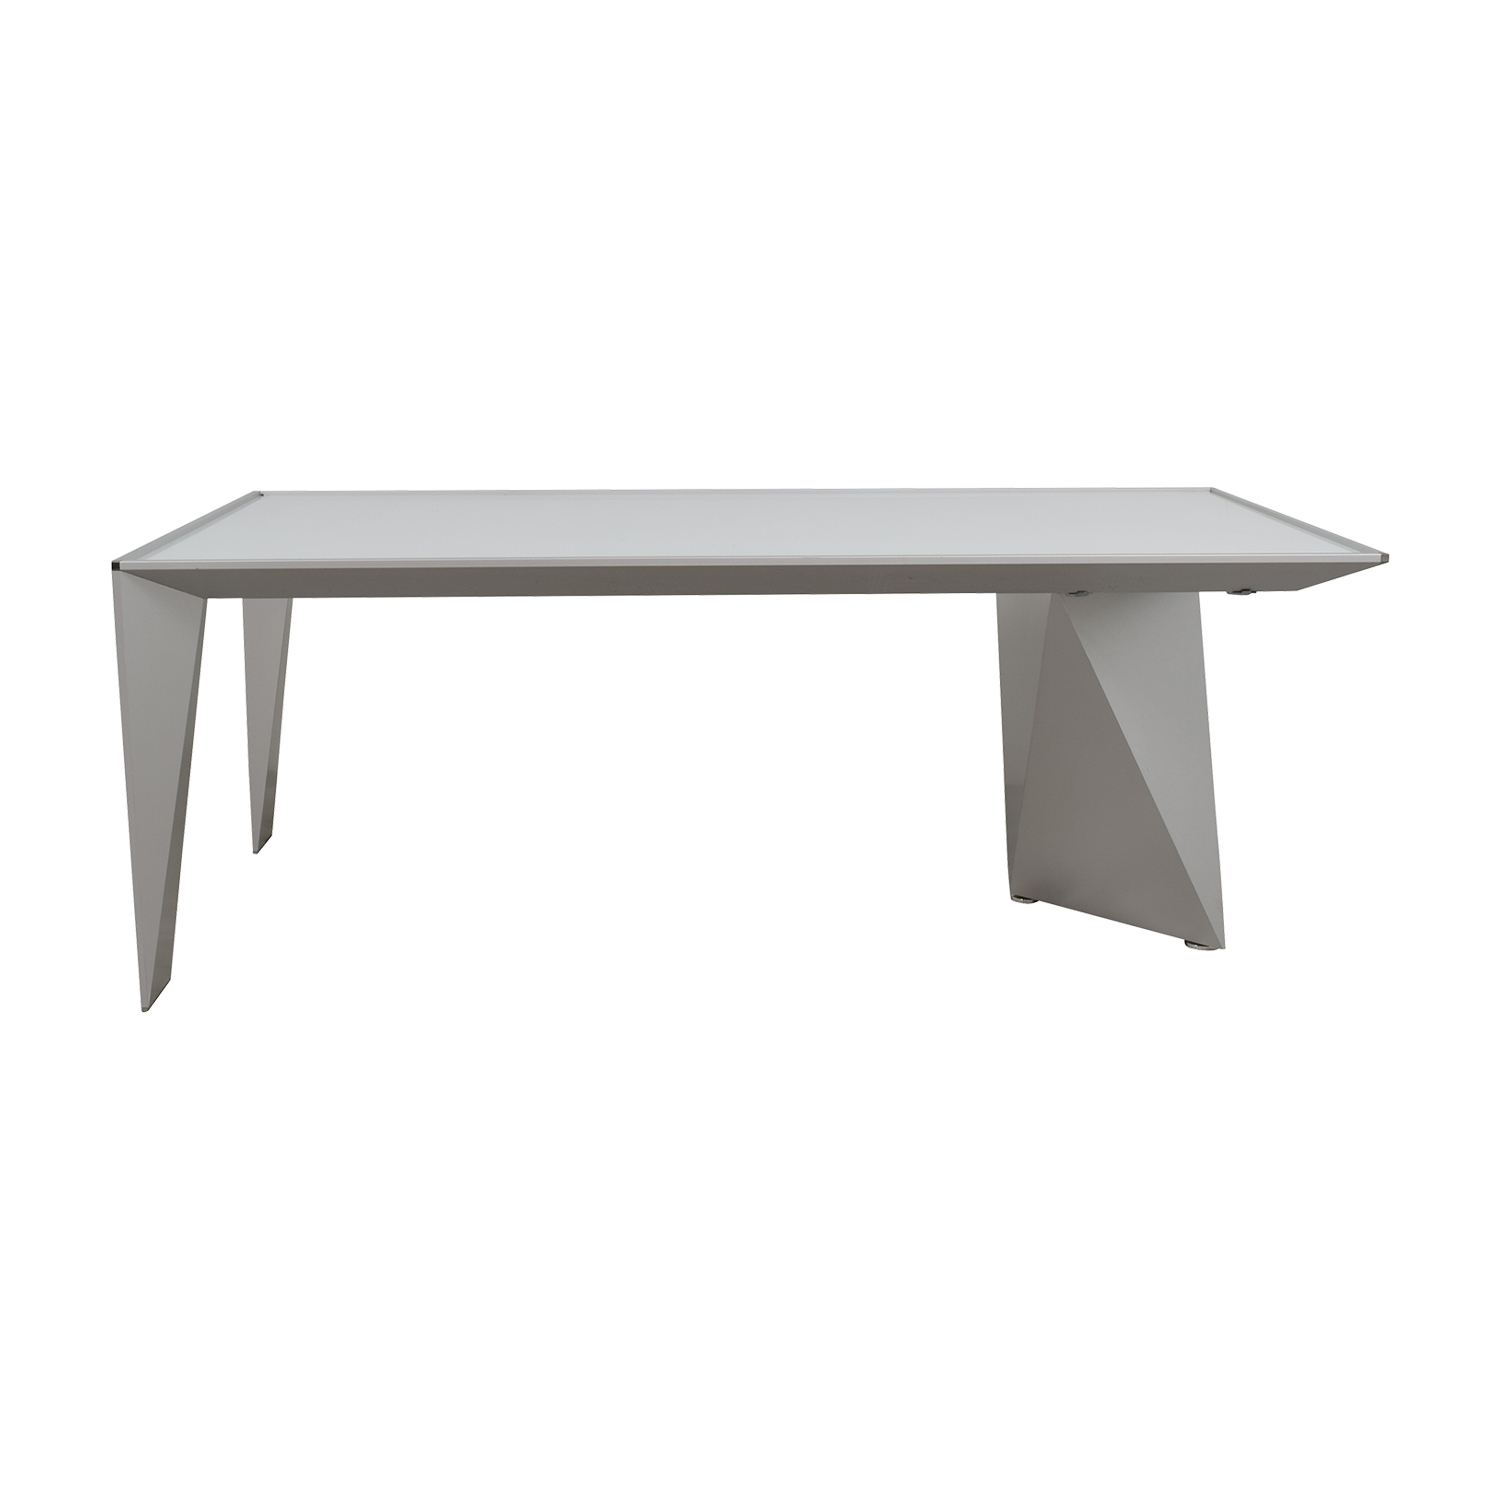 90% OFF - Alea Eracle Alea Eracle White Glass and Metal Frame Desk ...